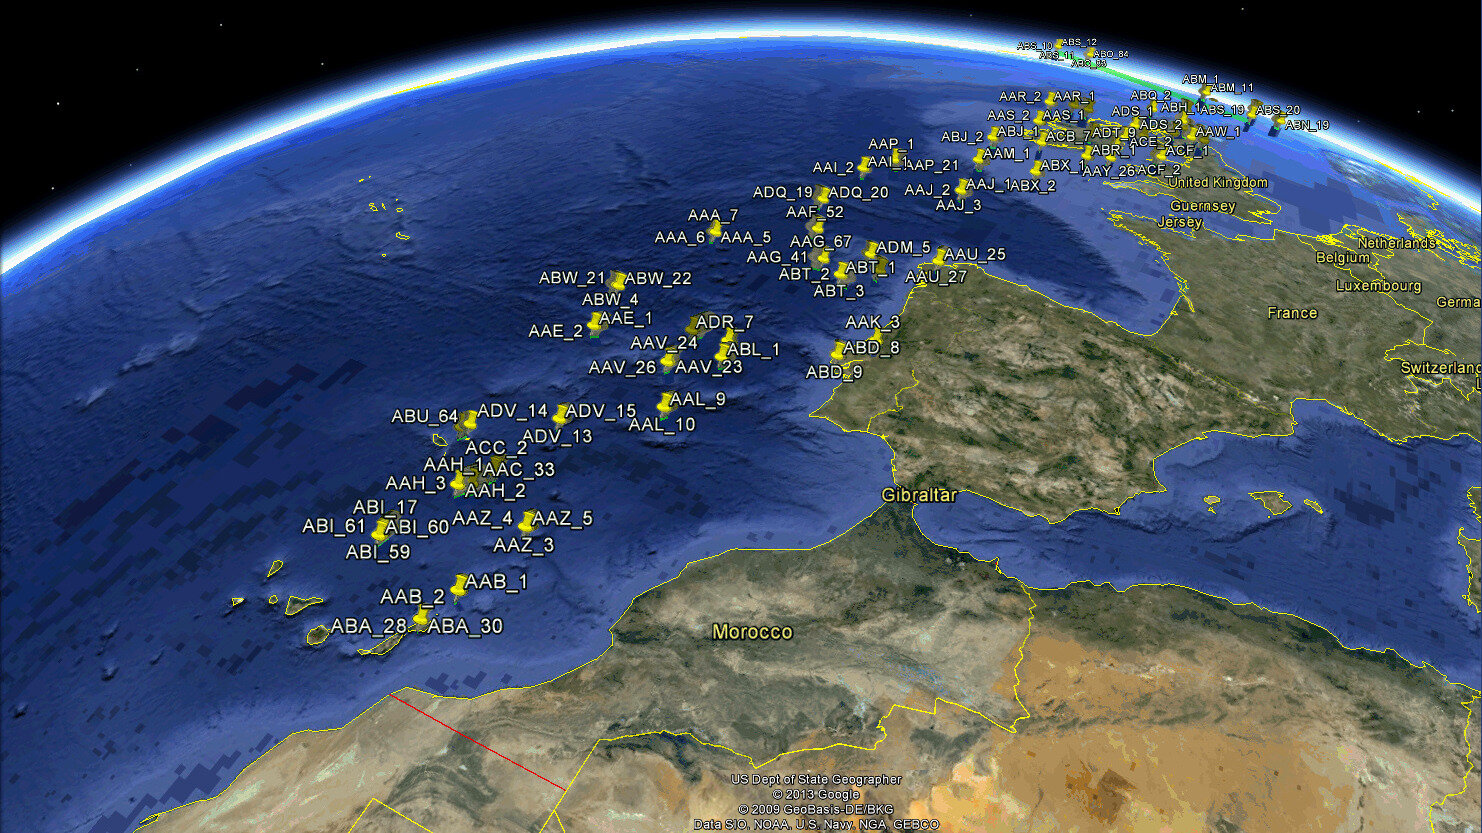 Detecting aircraft in vicinity of Europe